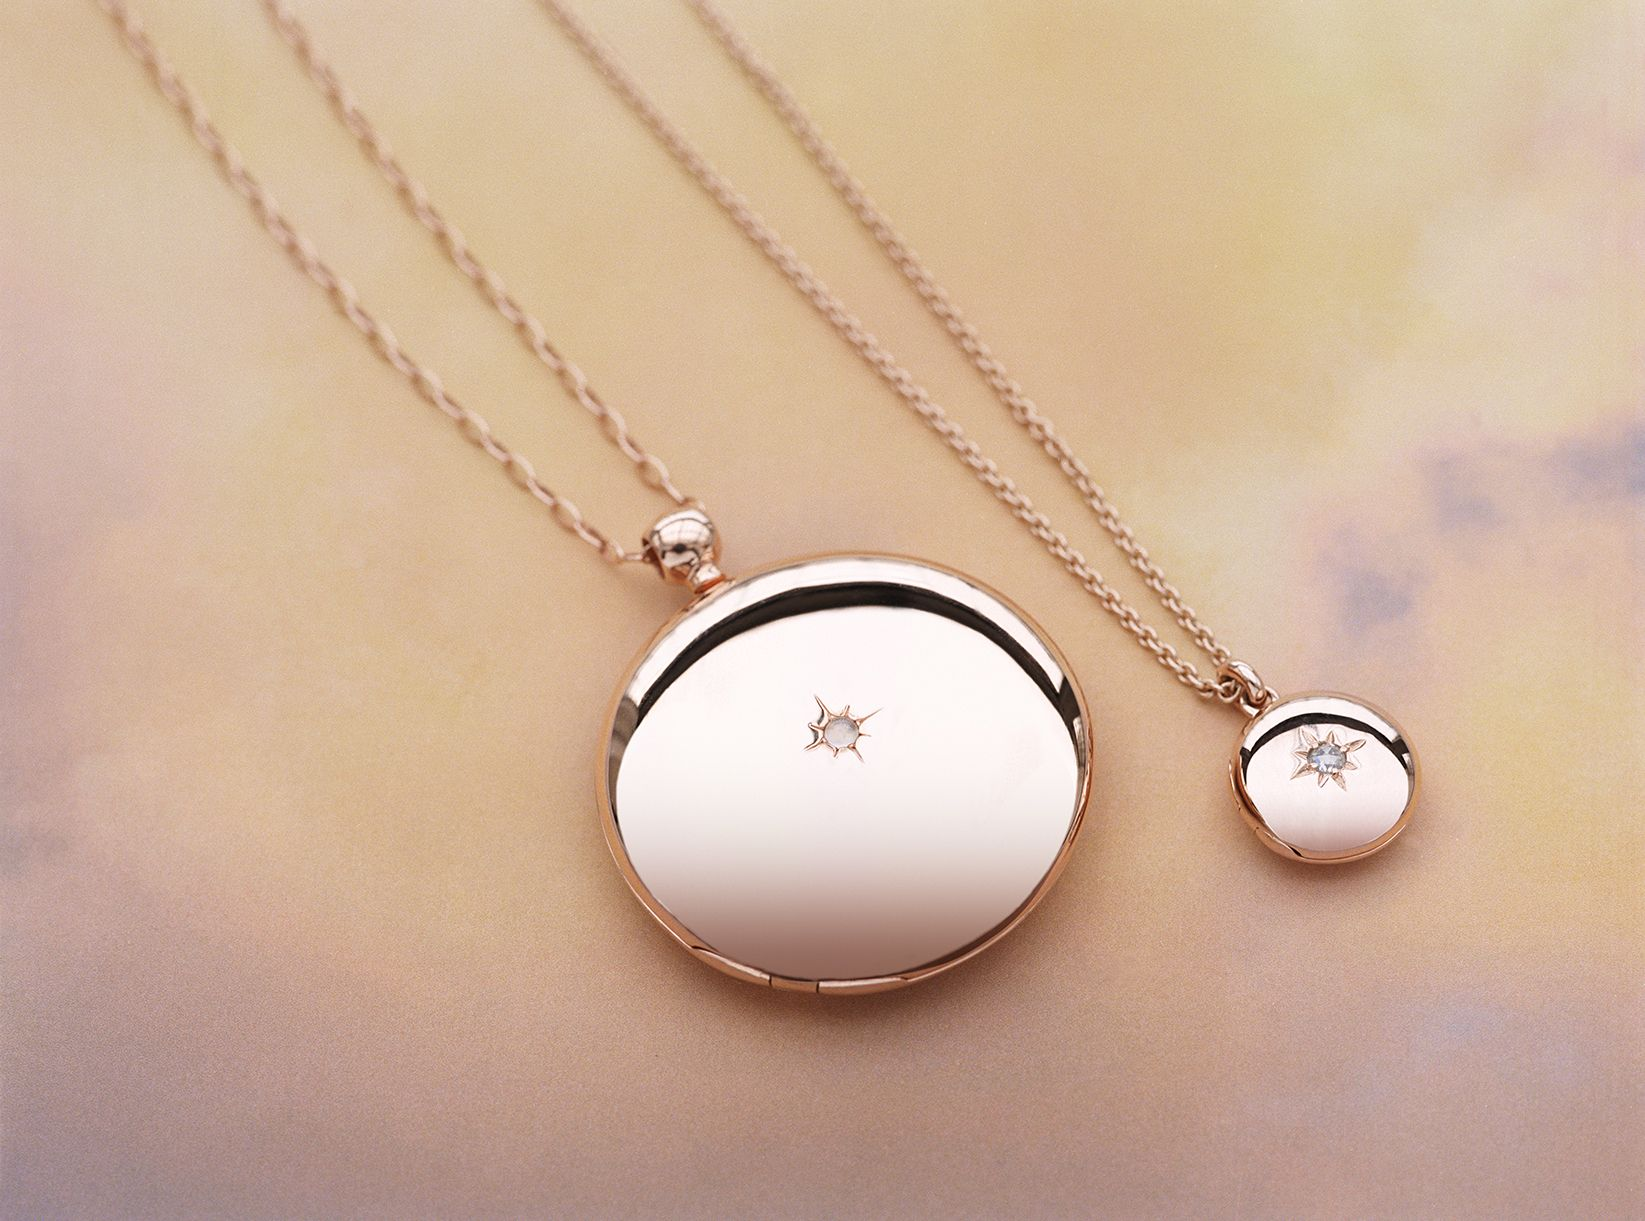 size view os lockets necklace simple locket necklaces limitless product heart alternate